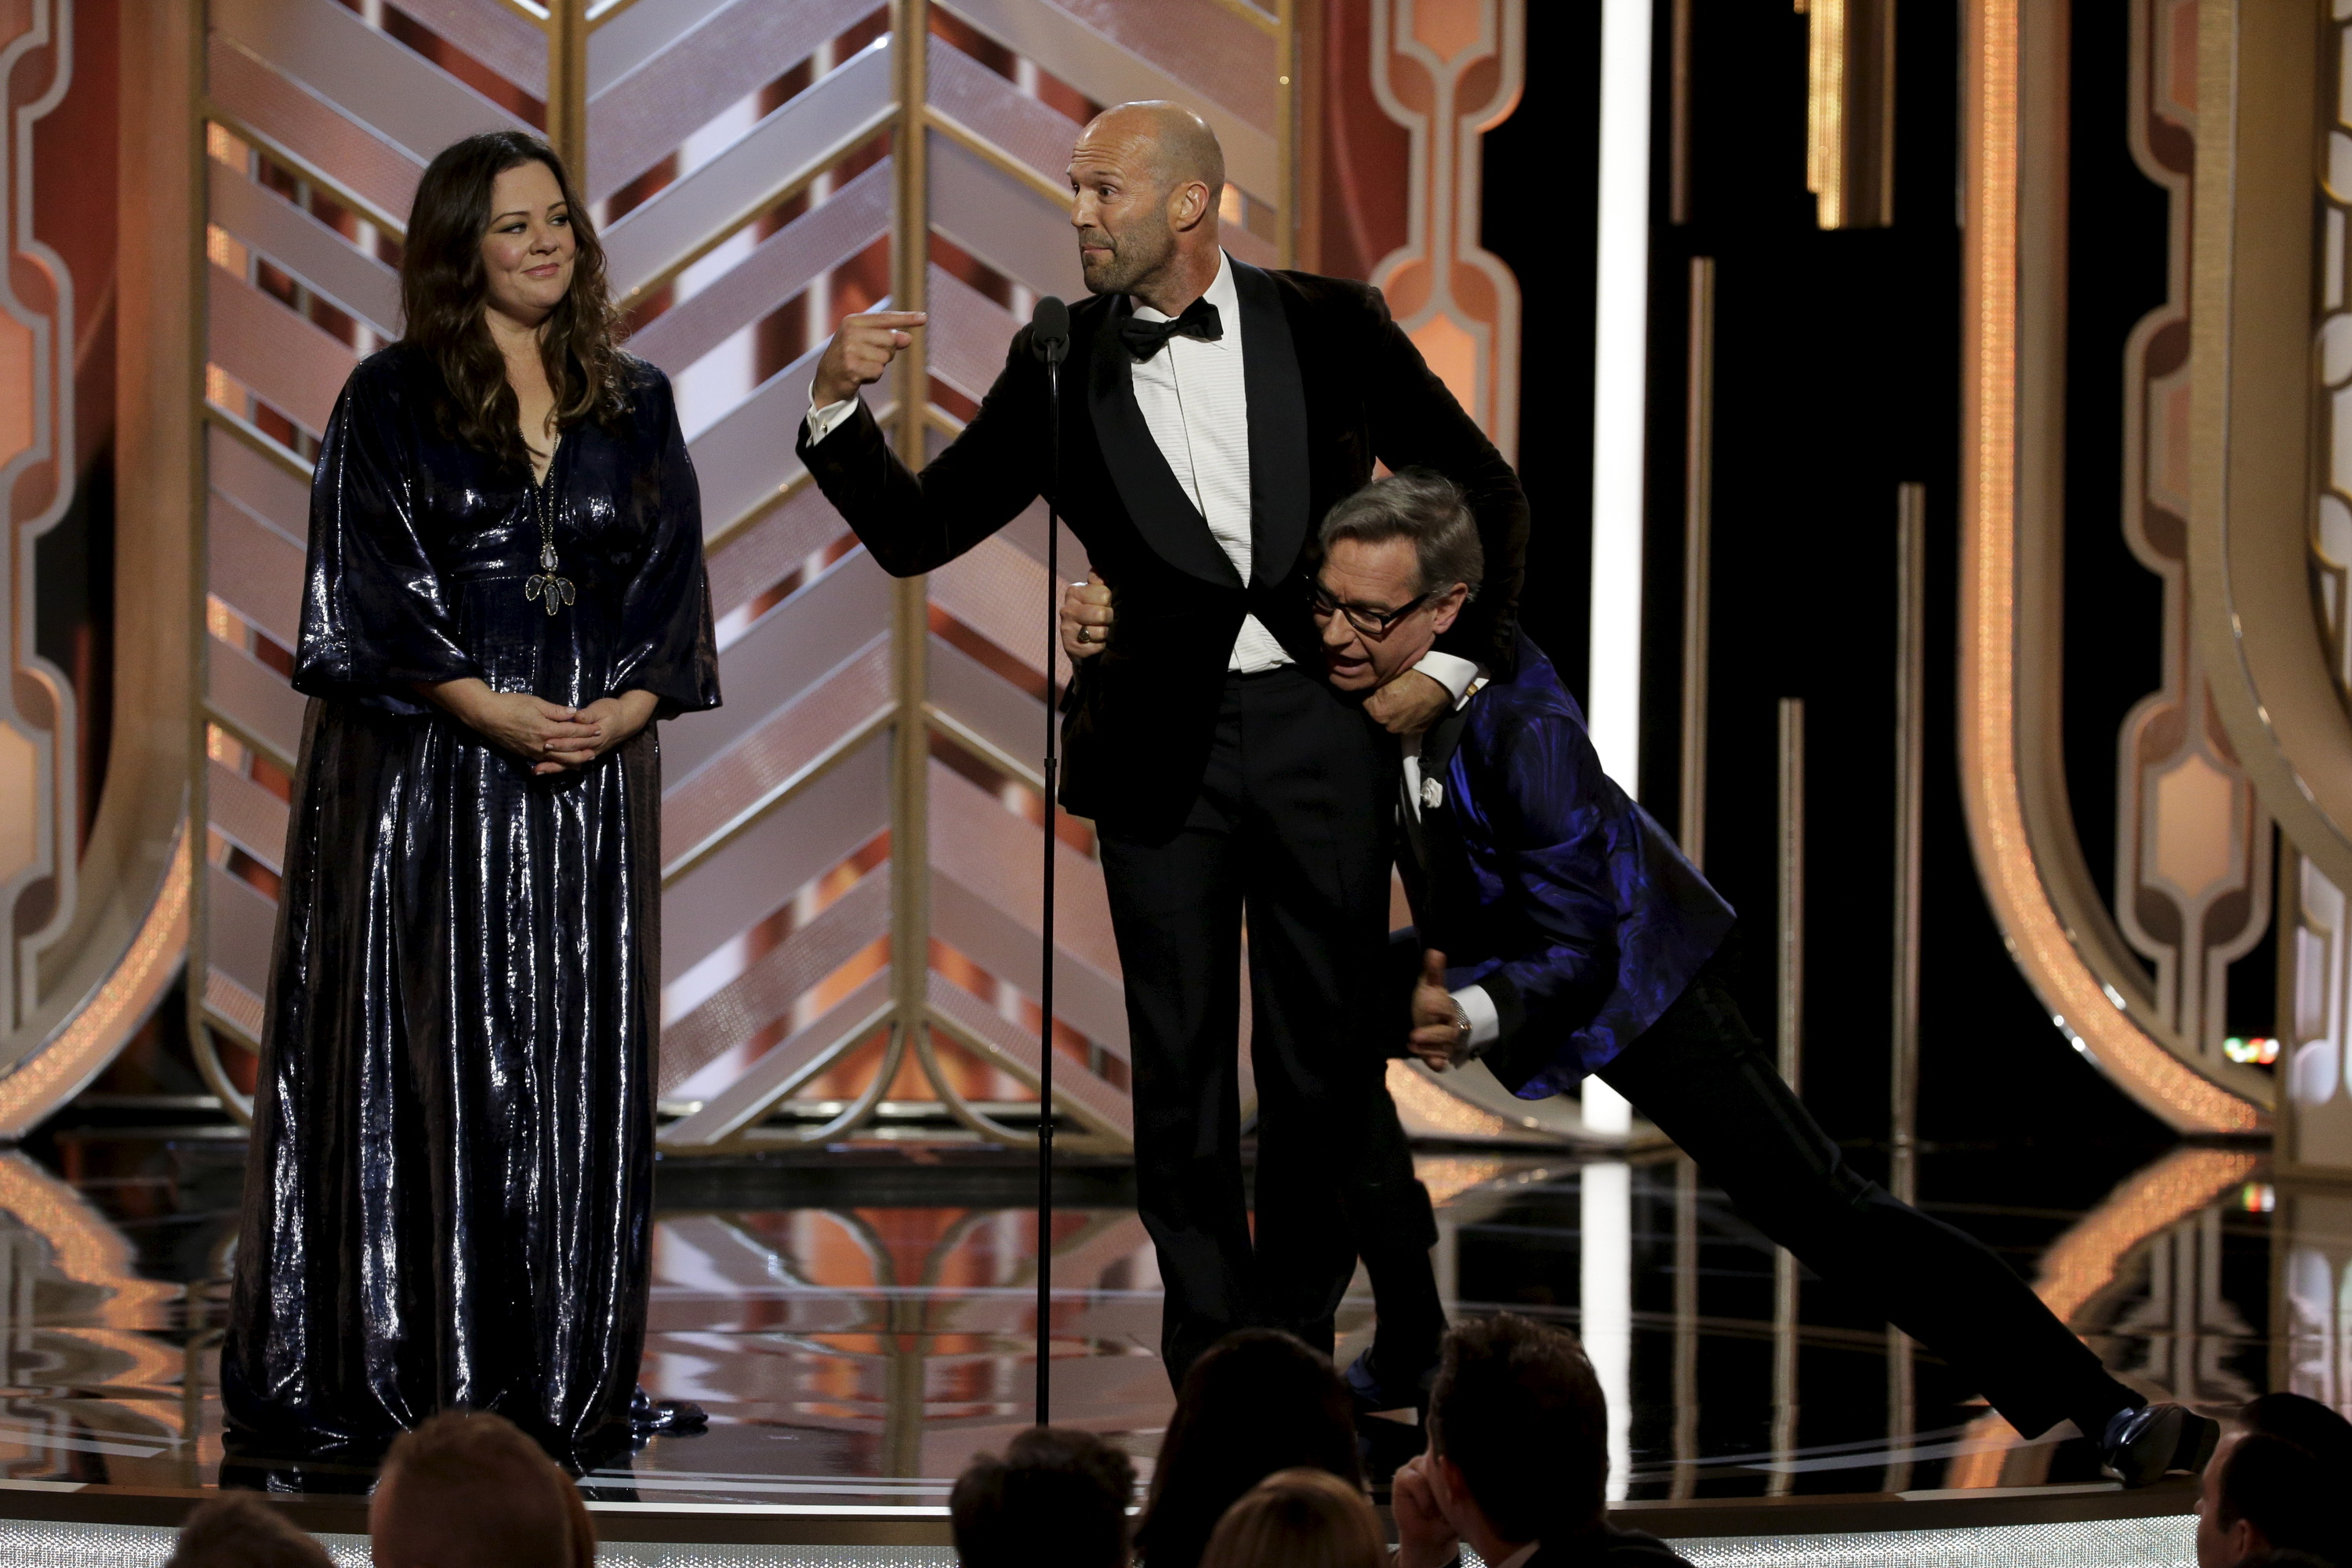 Melissa McCarthy (L) Jason Statham (C) and Paul Feig on stage at the 73rd Golden Globe Awards in Beverly Hills, California January 10, 2016. REUTERS/Paul Drinkwater/NBC Universal/Handout For editorial use only. Additional clearance required for commercial or promotional use. Contact your local office for assistance. Any commercial or promotional use of NBCUniversal content requires NBCUniversal's prior written consent. No book publishing without prior approval. - RTX21S66